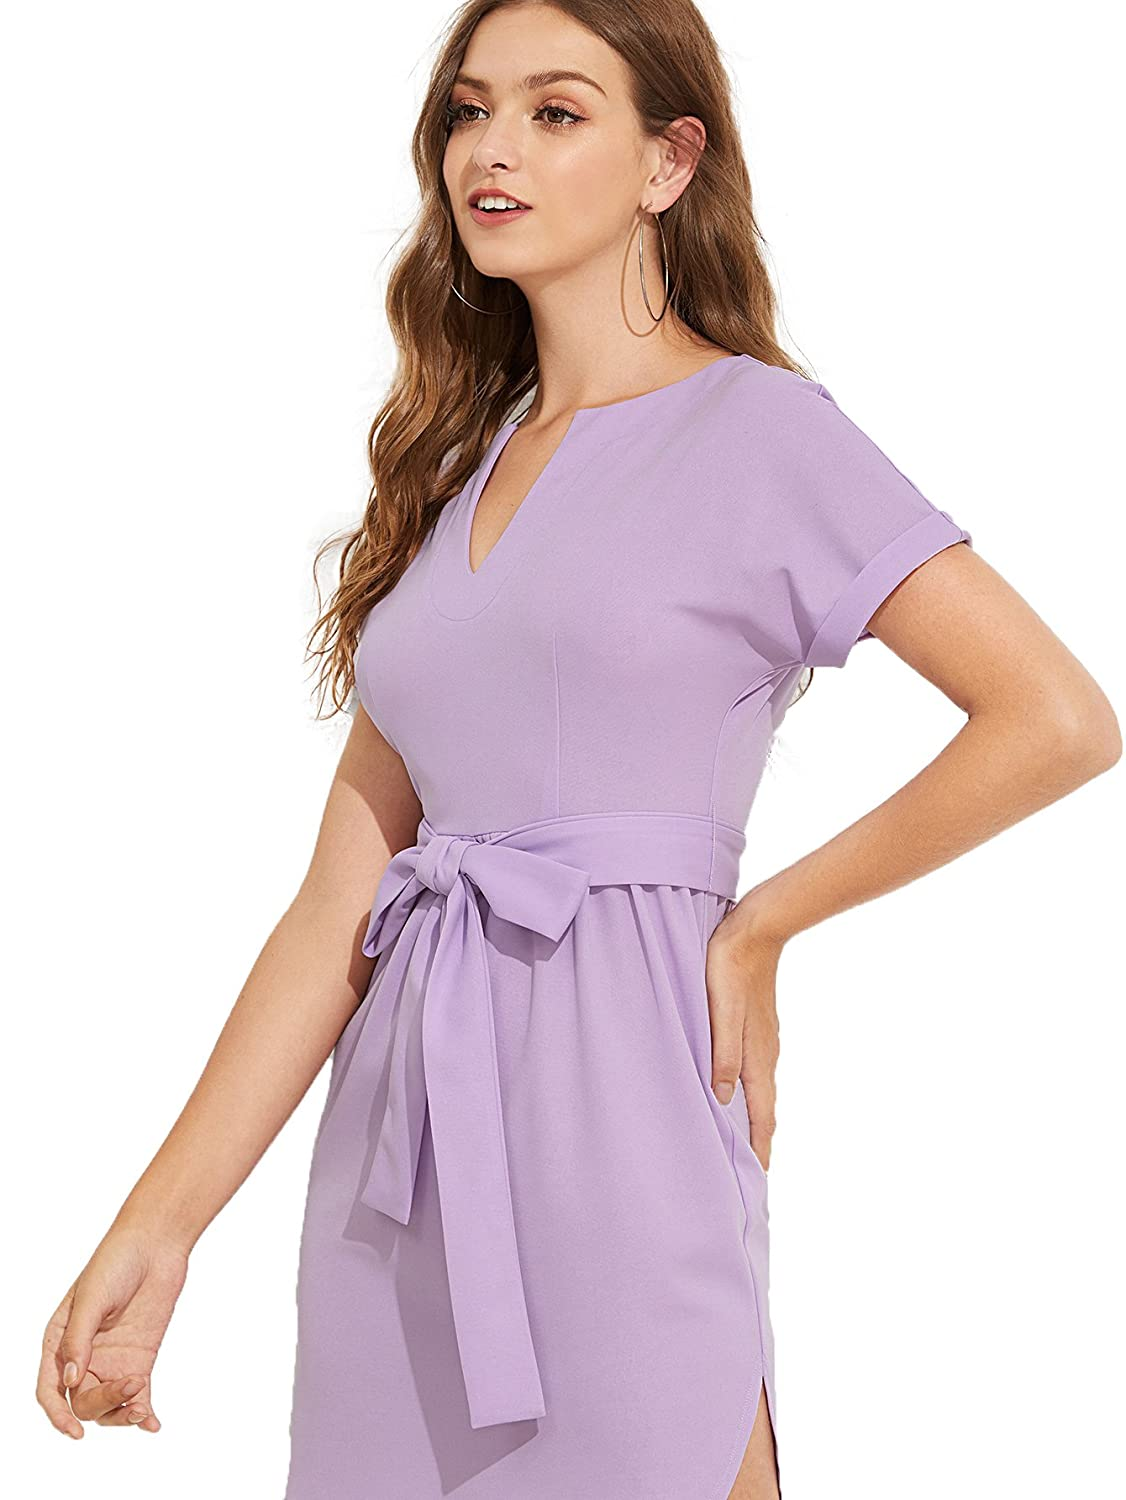 7e2b7e73ff9 Romwe Women s Casual V-Neck Roll up Short Sleeve Belted Sheath Dress at  Amazon Women s Clothing store